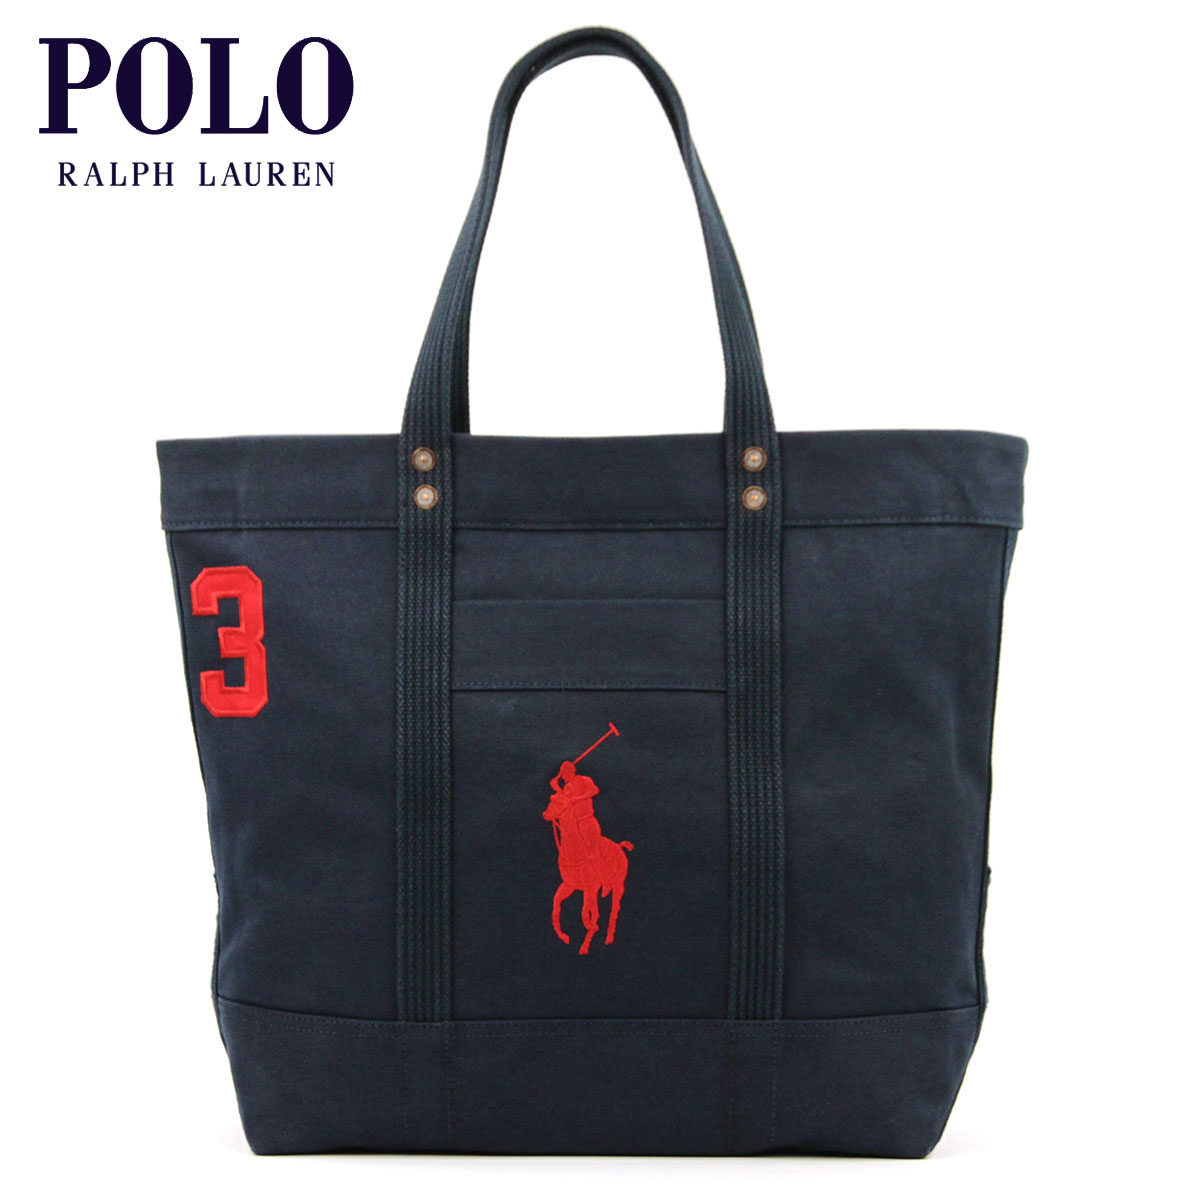 Polo Ralph Lauren genuine tote bag Canvas Big Pony Tote NAVY A05B B3C C8D D0E E06F fs3gm10P22Nov13